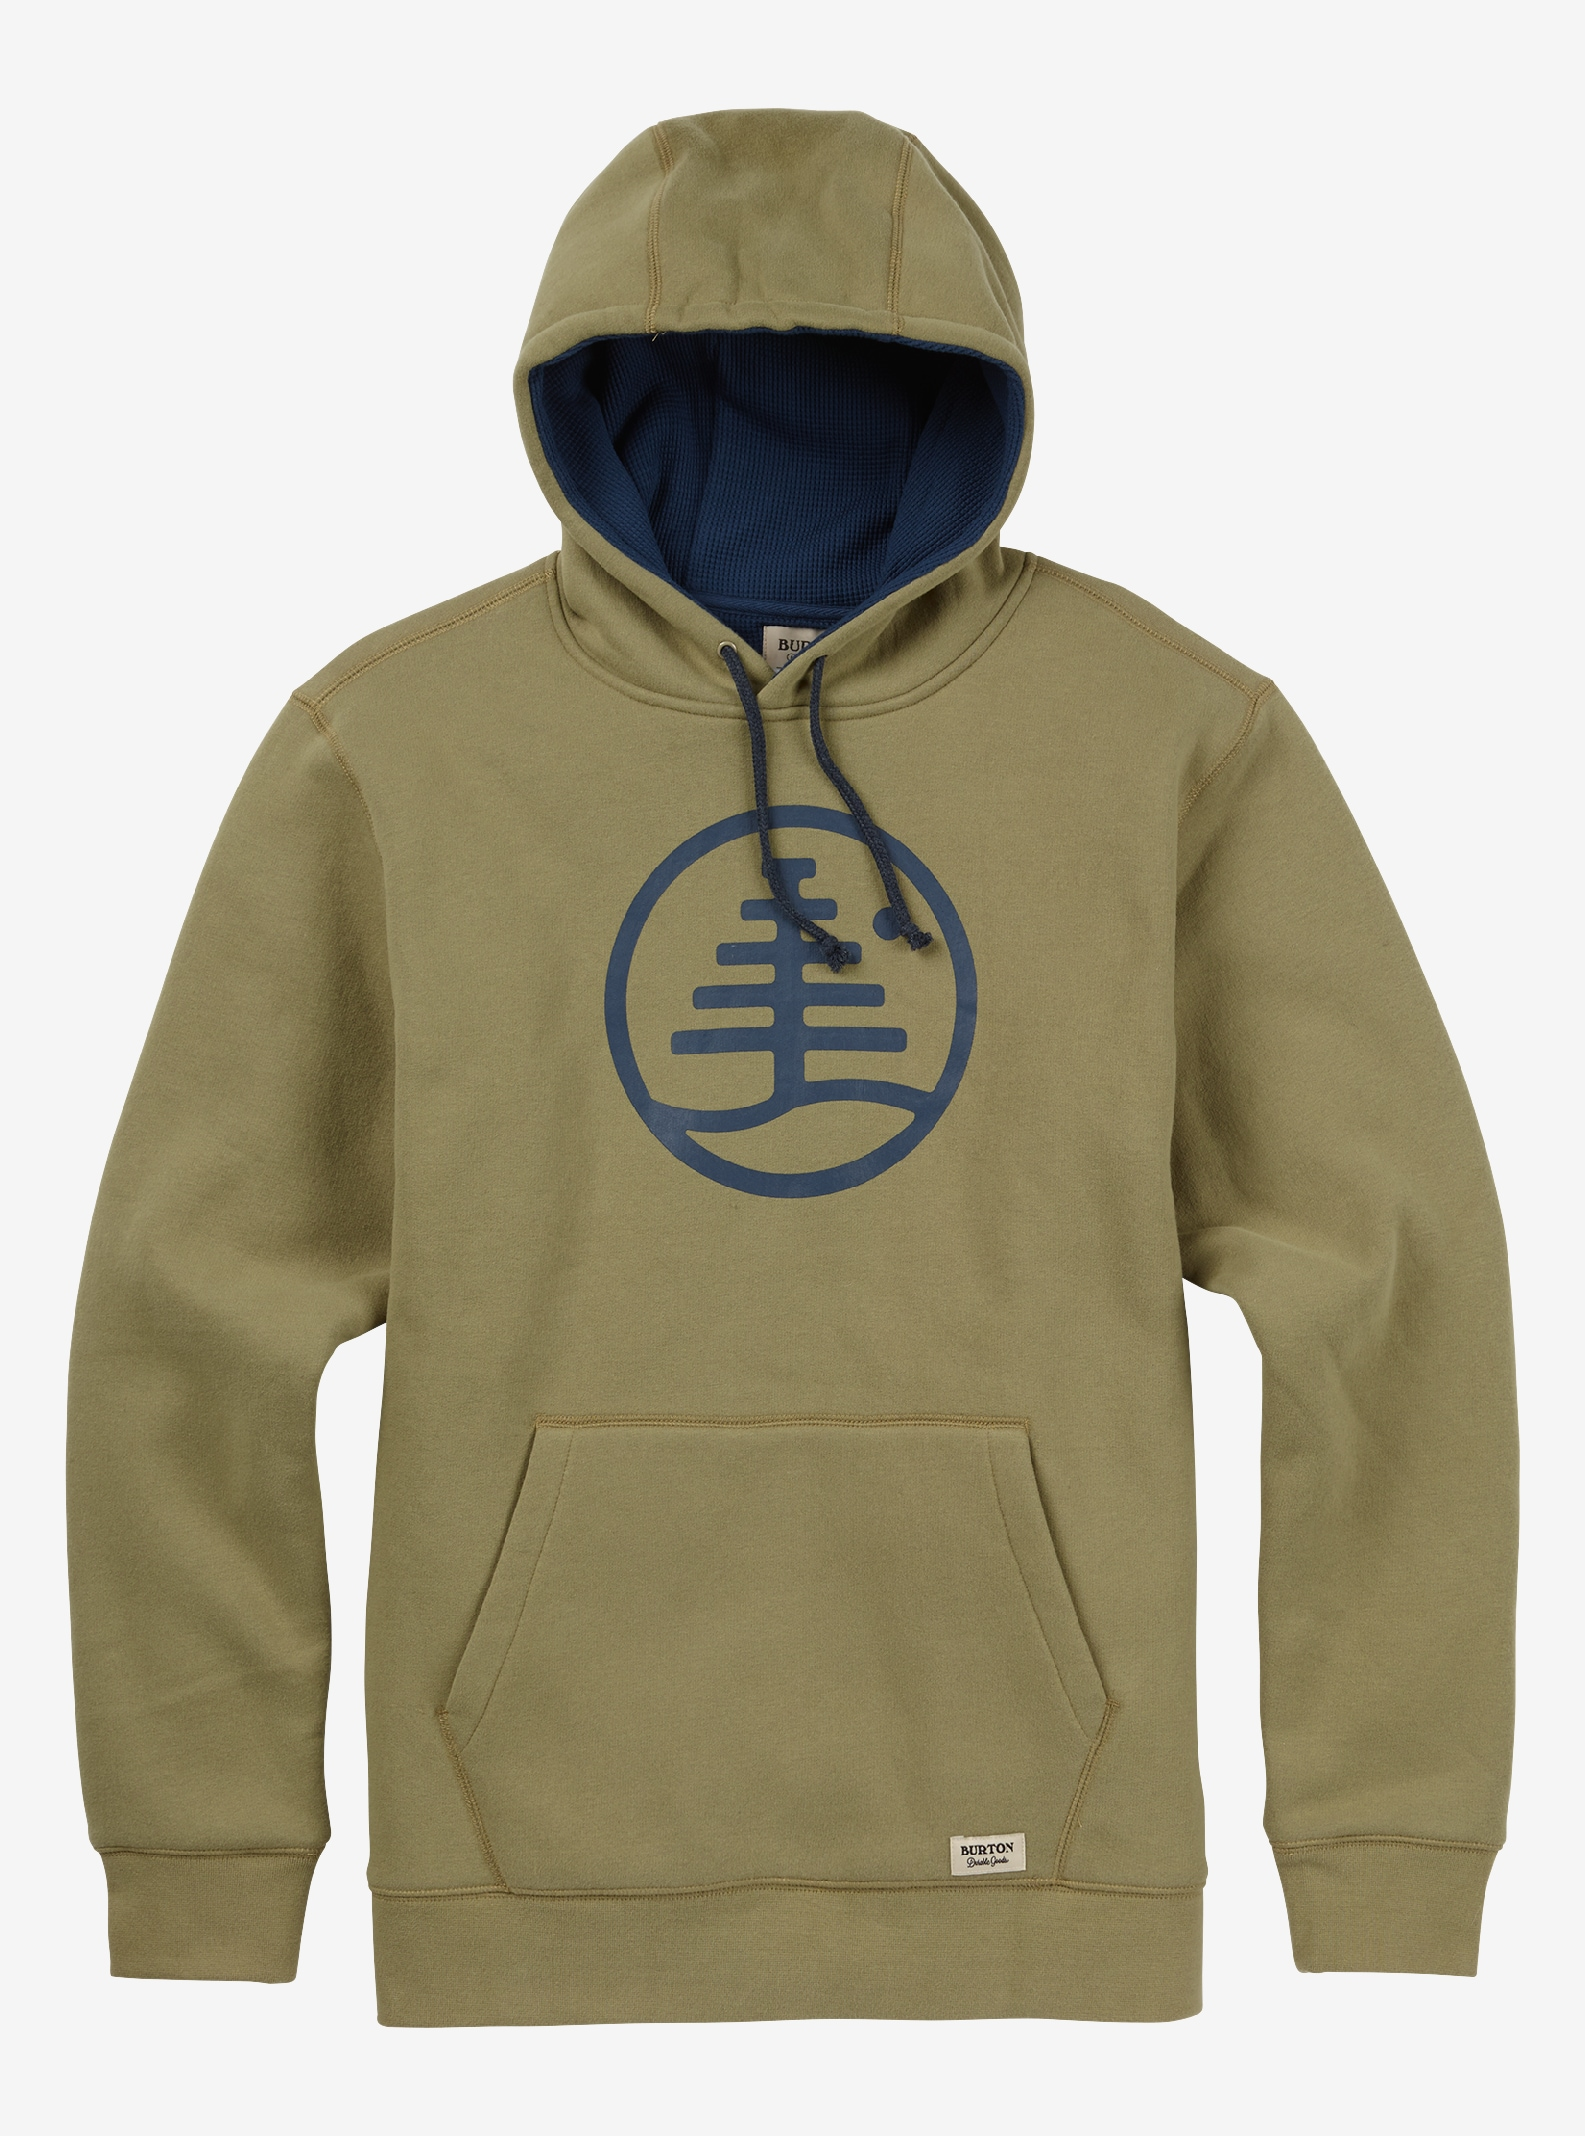 Men's Burton Family Tree Pullover Hoodie shown in Rucksack